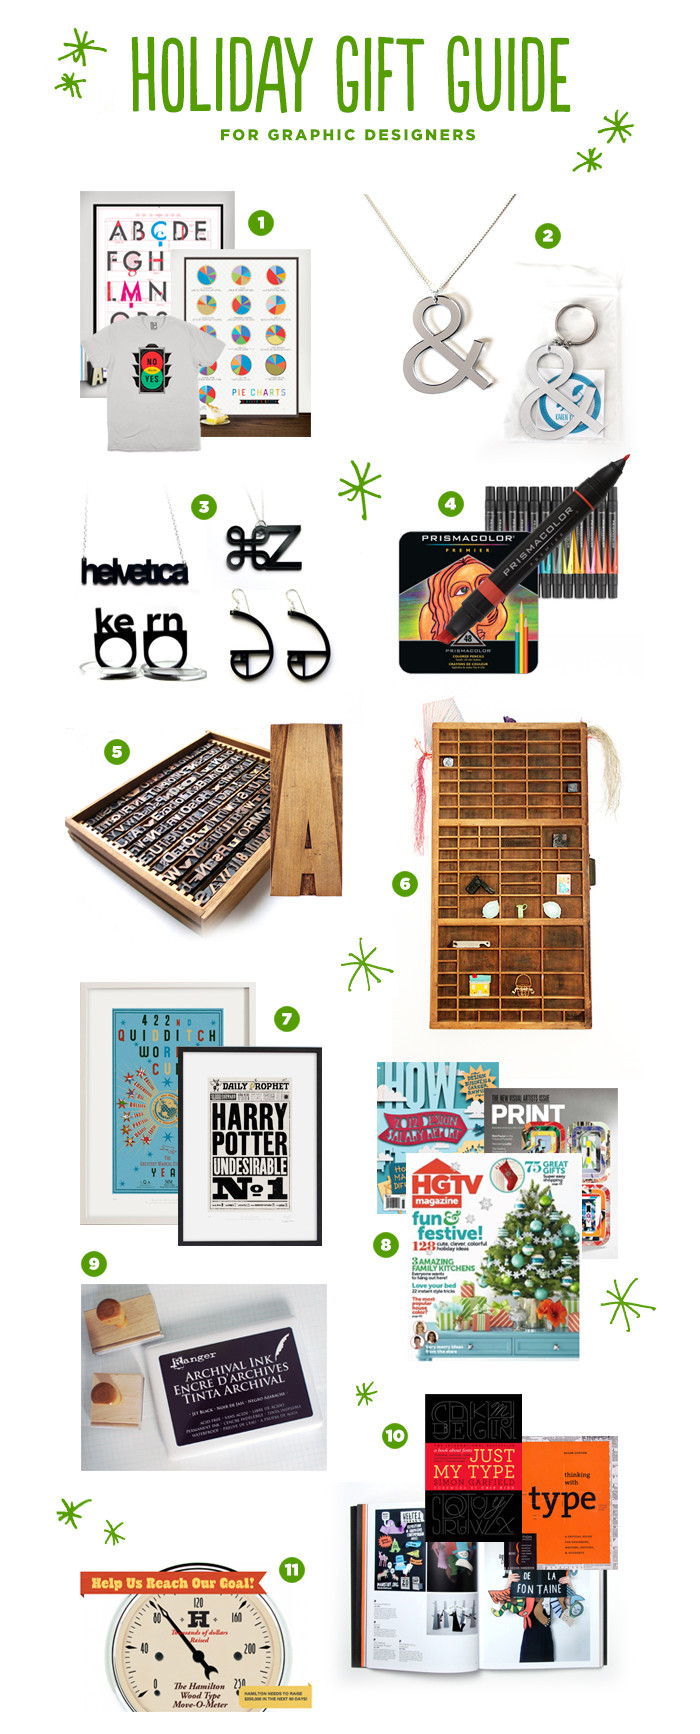 Best ideas about Gift Ideas For Graphic Designers . Save or Pin Holiday Gift Guide for Graphic Designers Now.